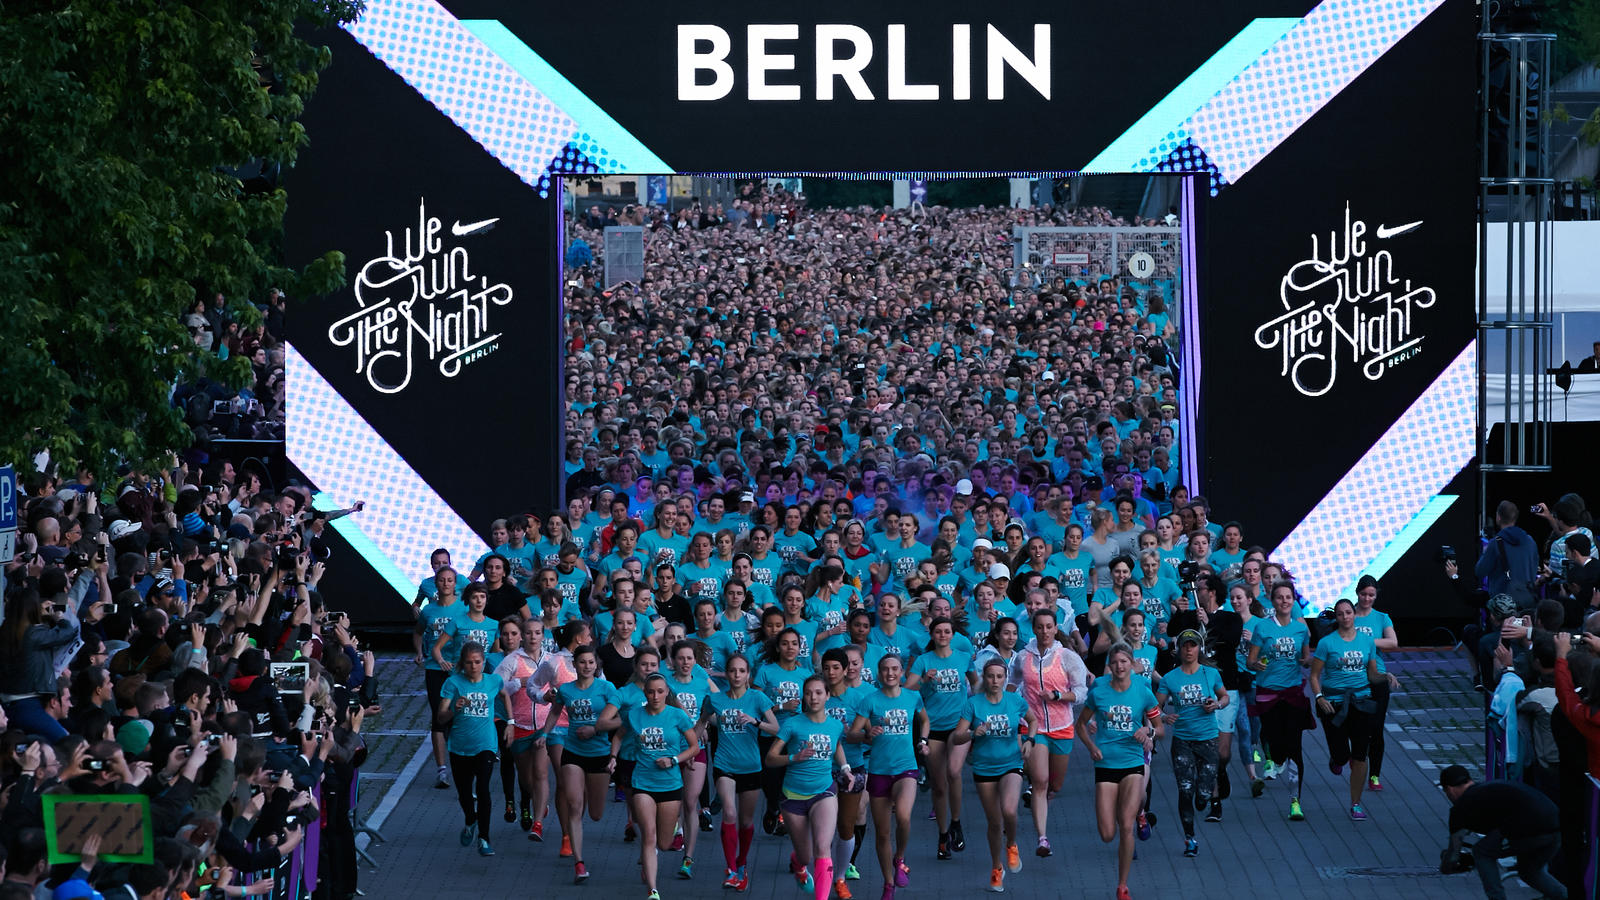 THOUSANDS OF GIRLS OWNED THE NIGHT IN BERLIN